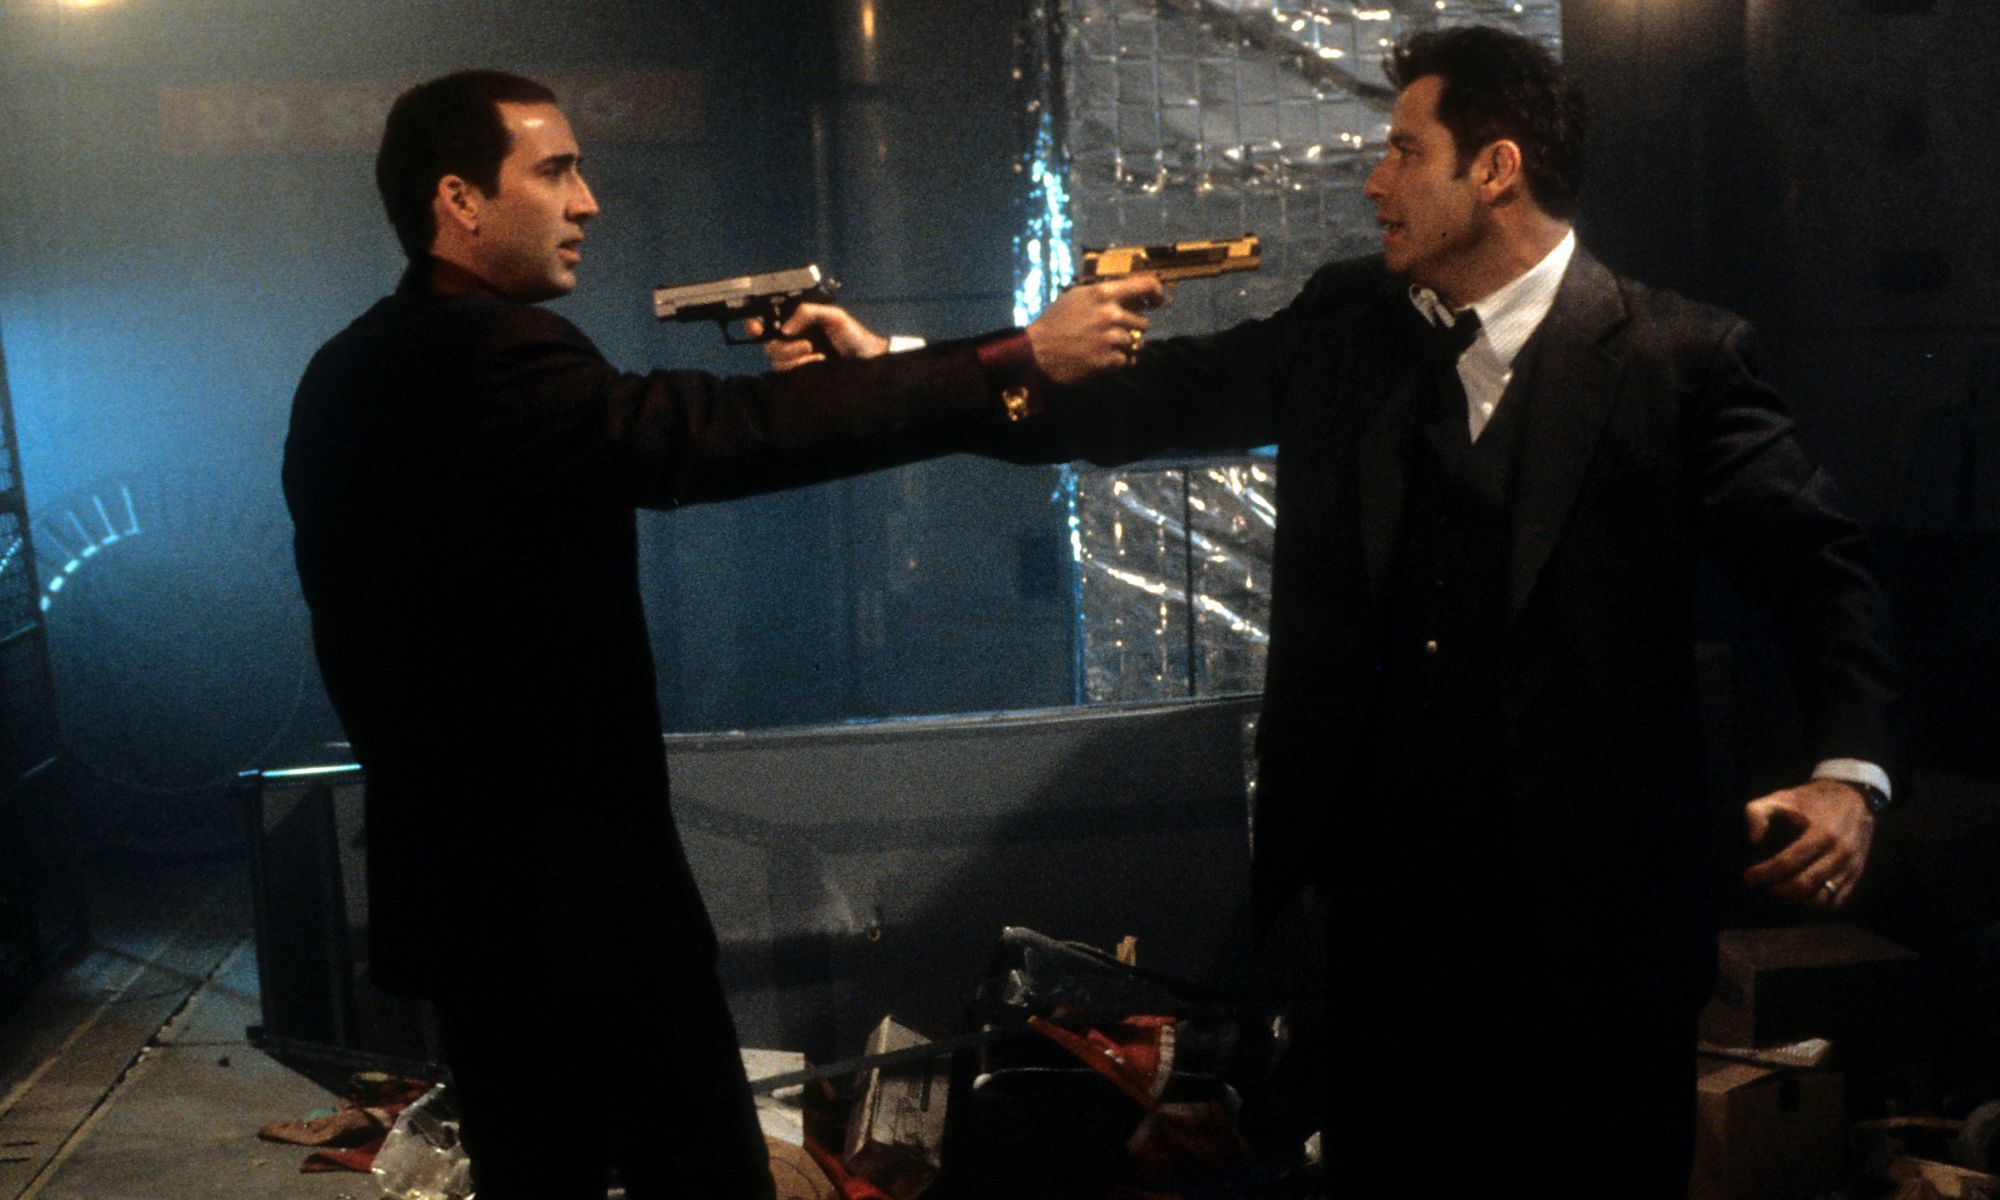 Nicolas Cage (left) and John Travolta in Face/Off